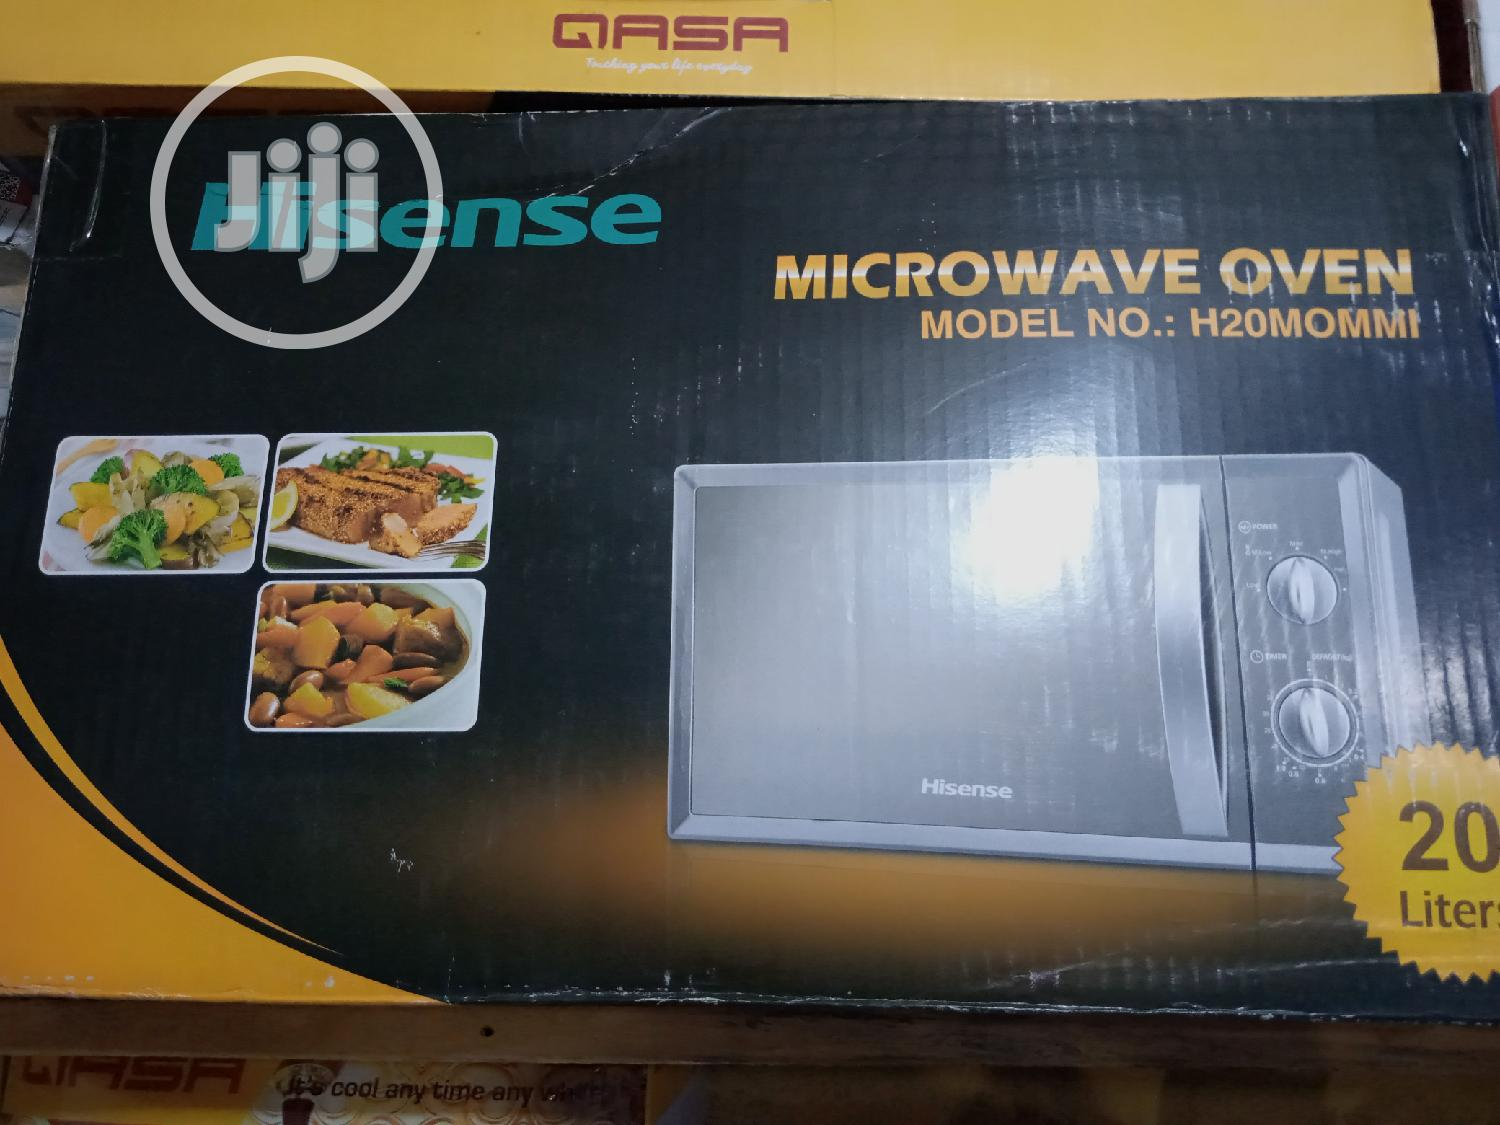 20 Liter Microwave Oven